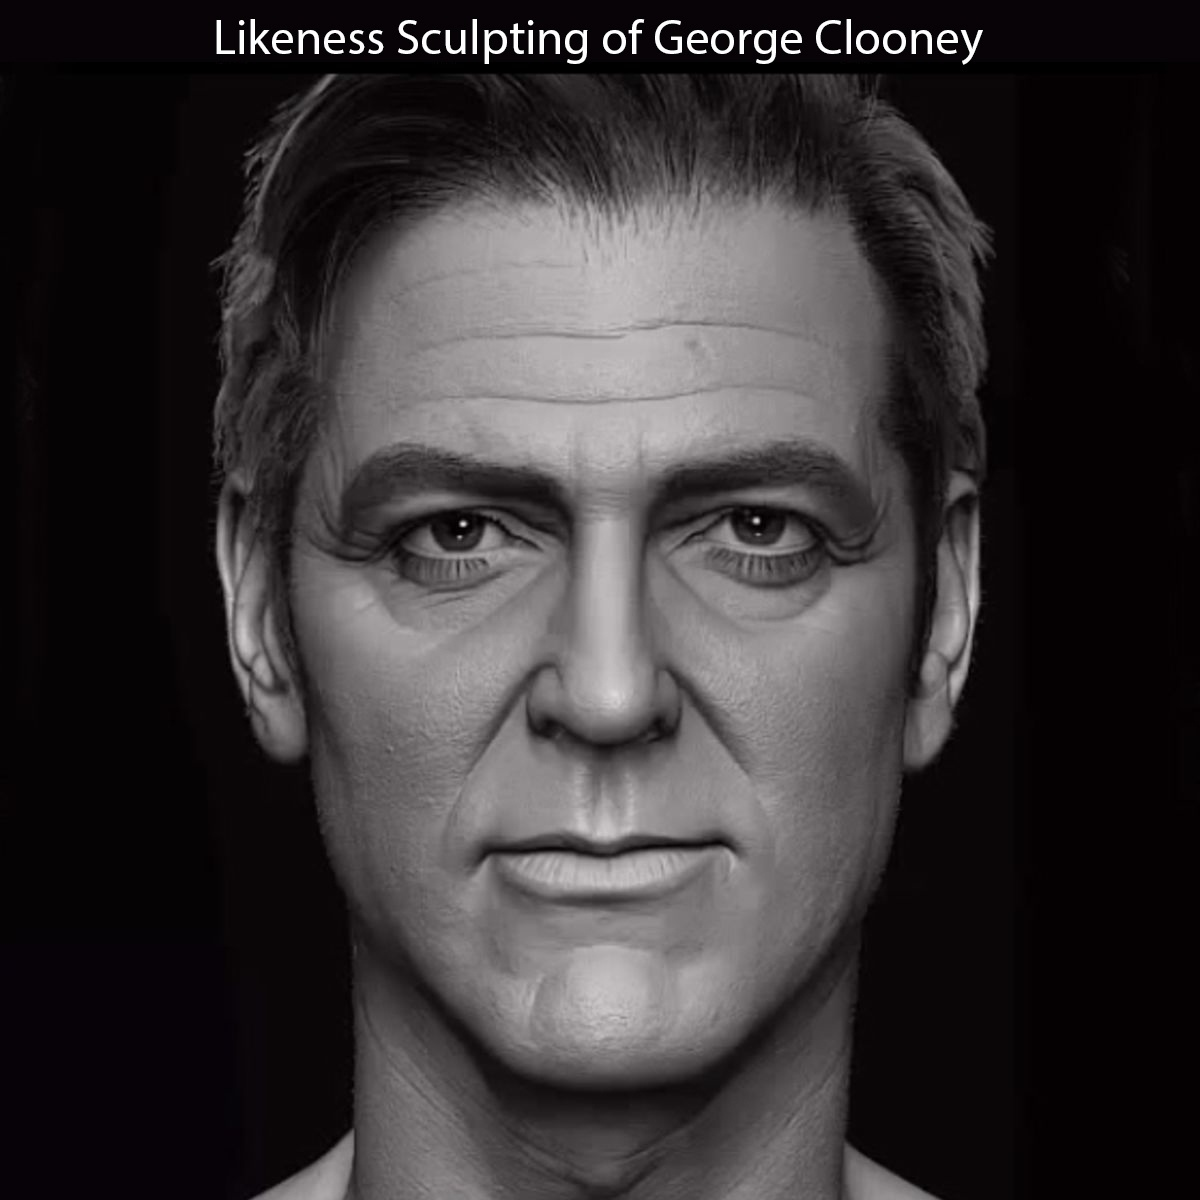 George Clooney Likeness Sculpting in ZBrush by Hossein Diba